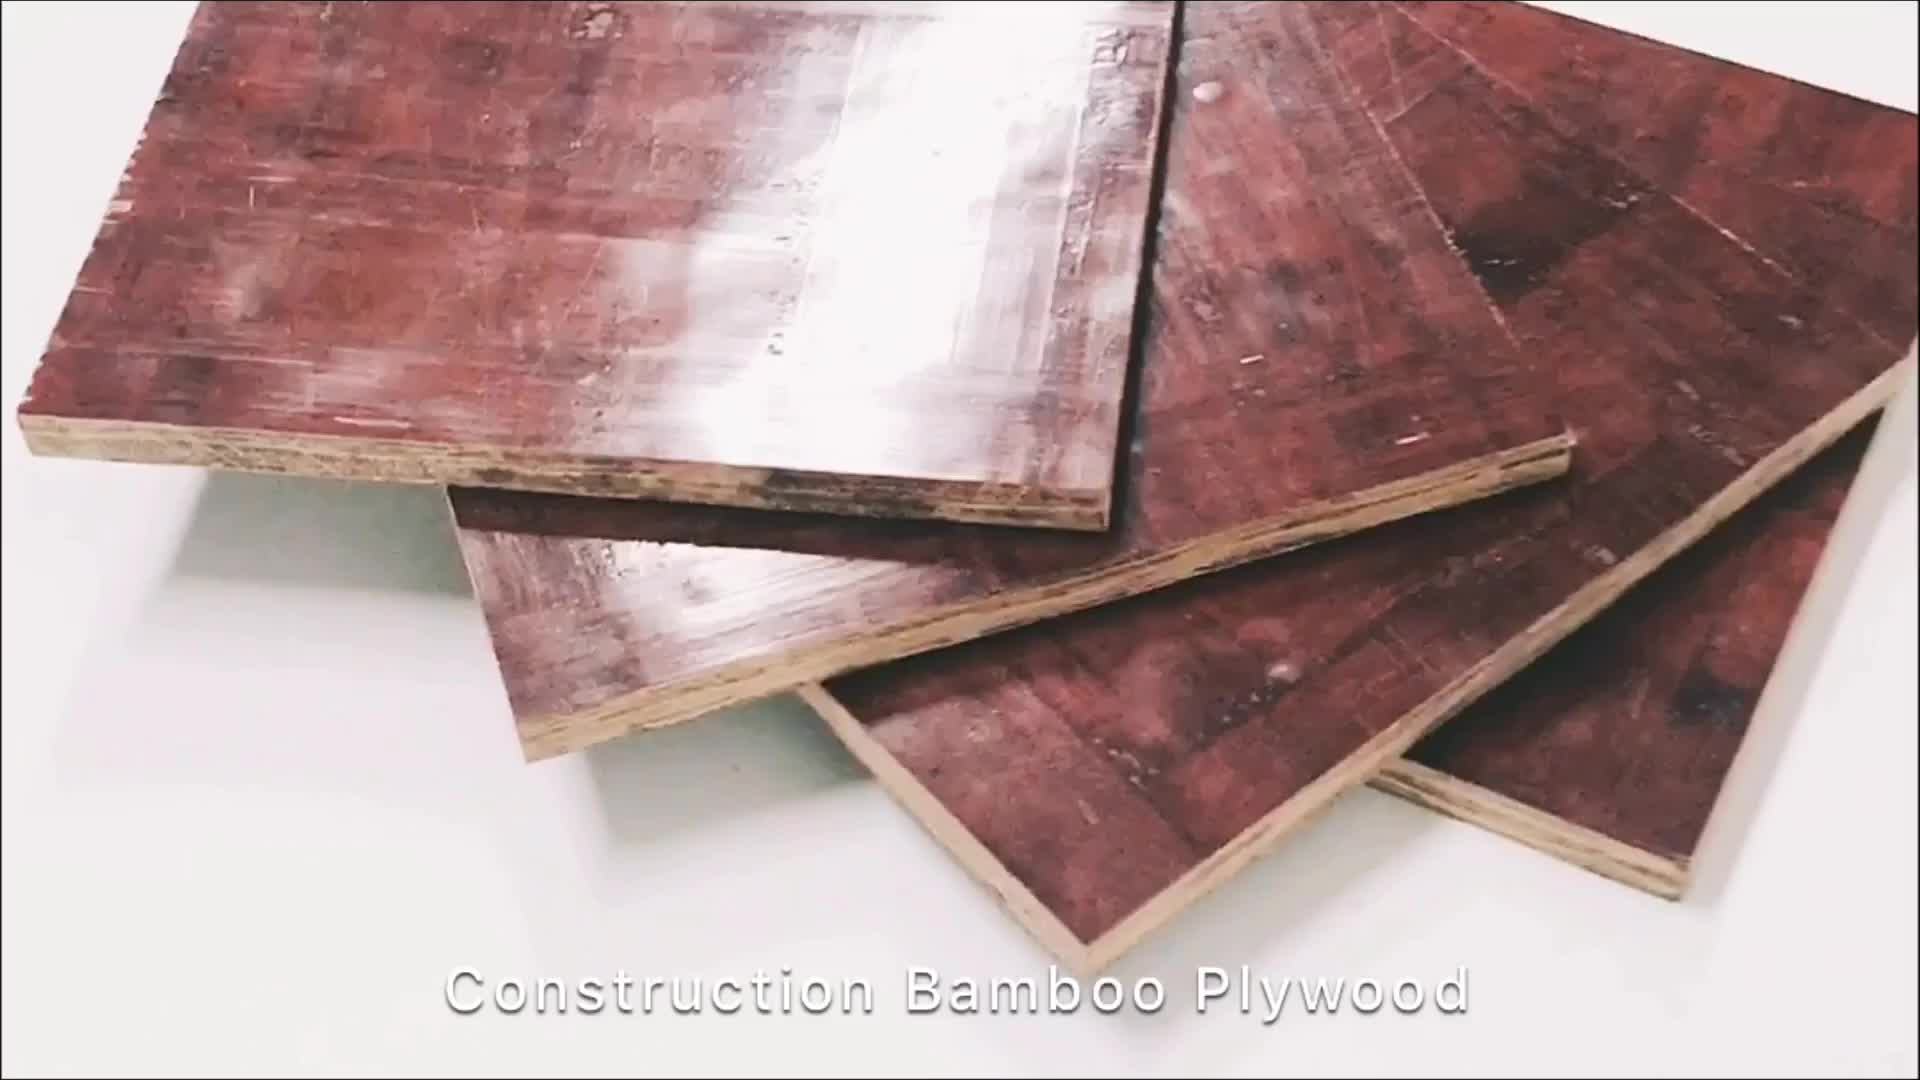 18mm shuttering bamboo plywood prices india